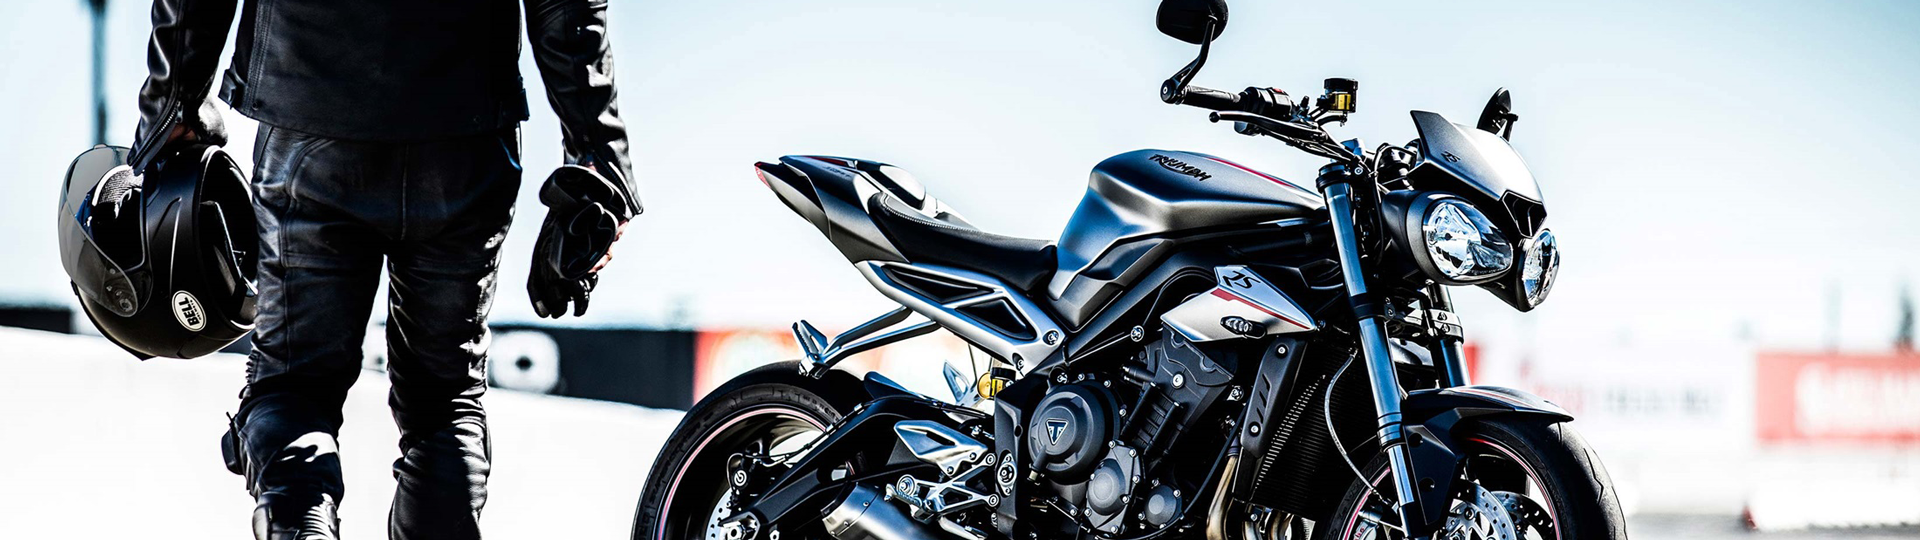 The all new Street Triple